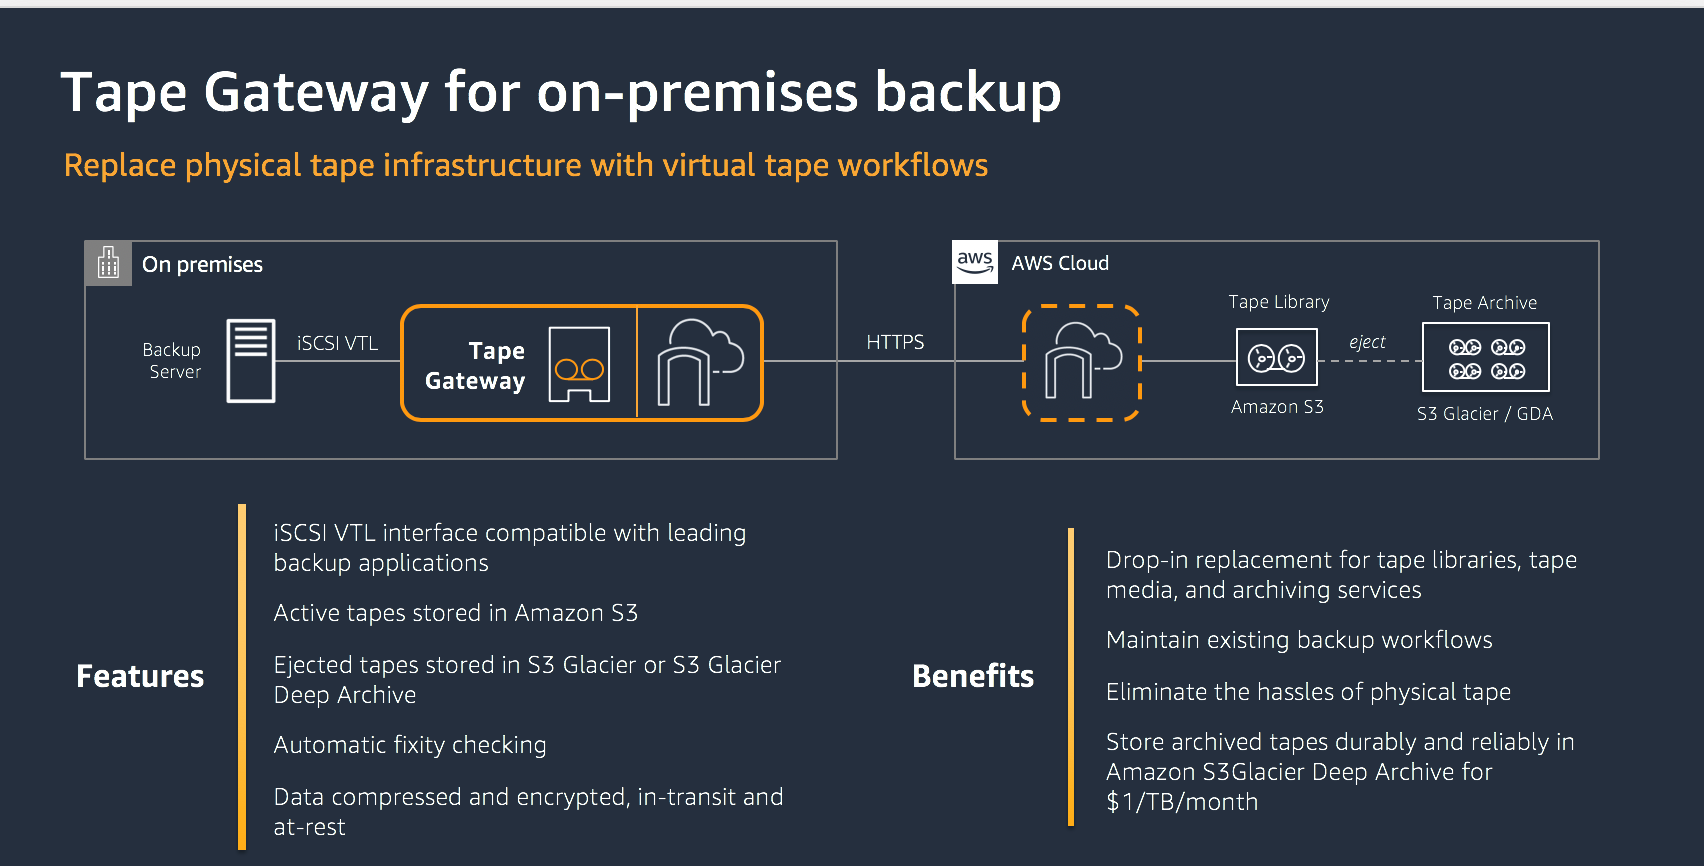 Tape Gateway for on-premises backups